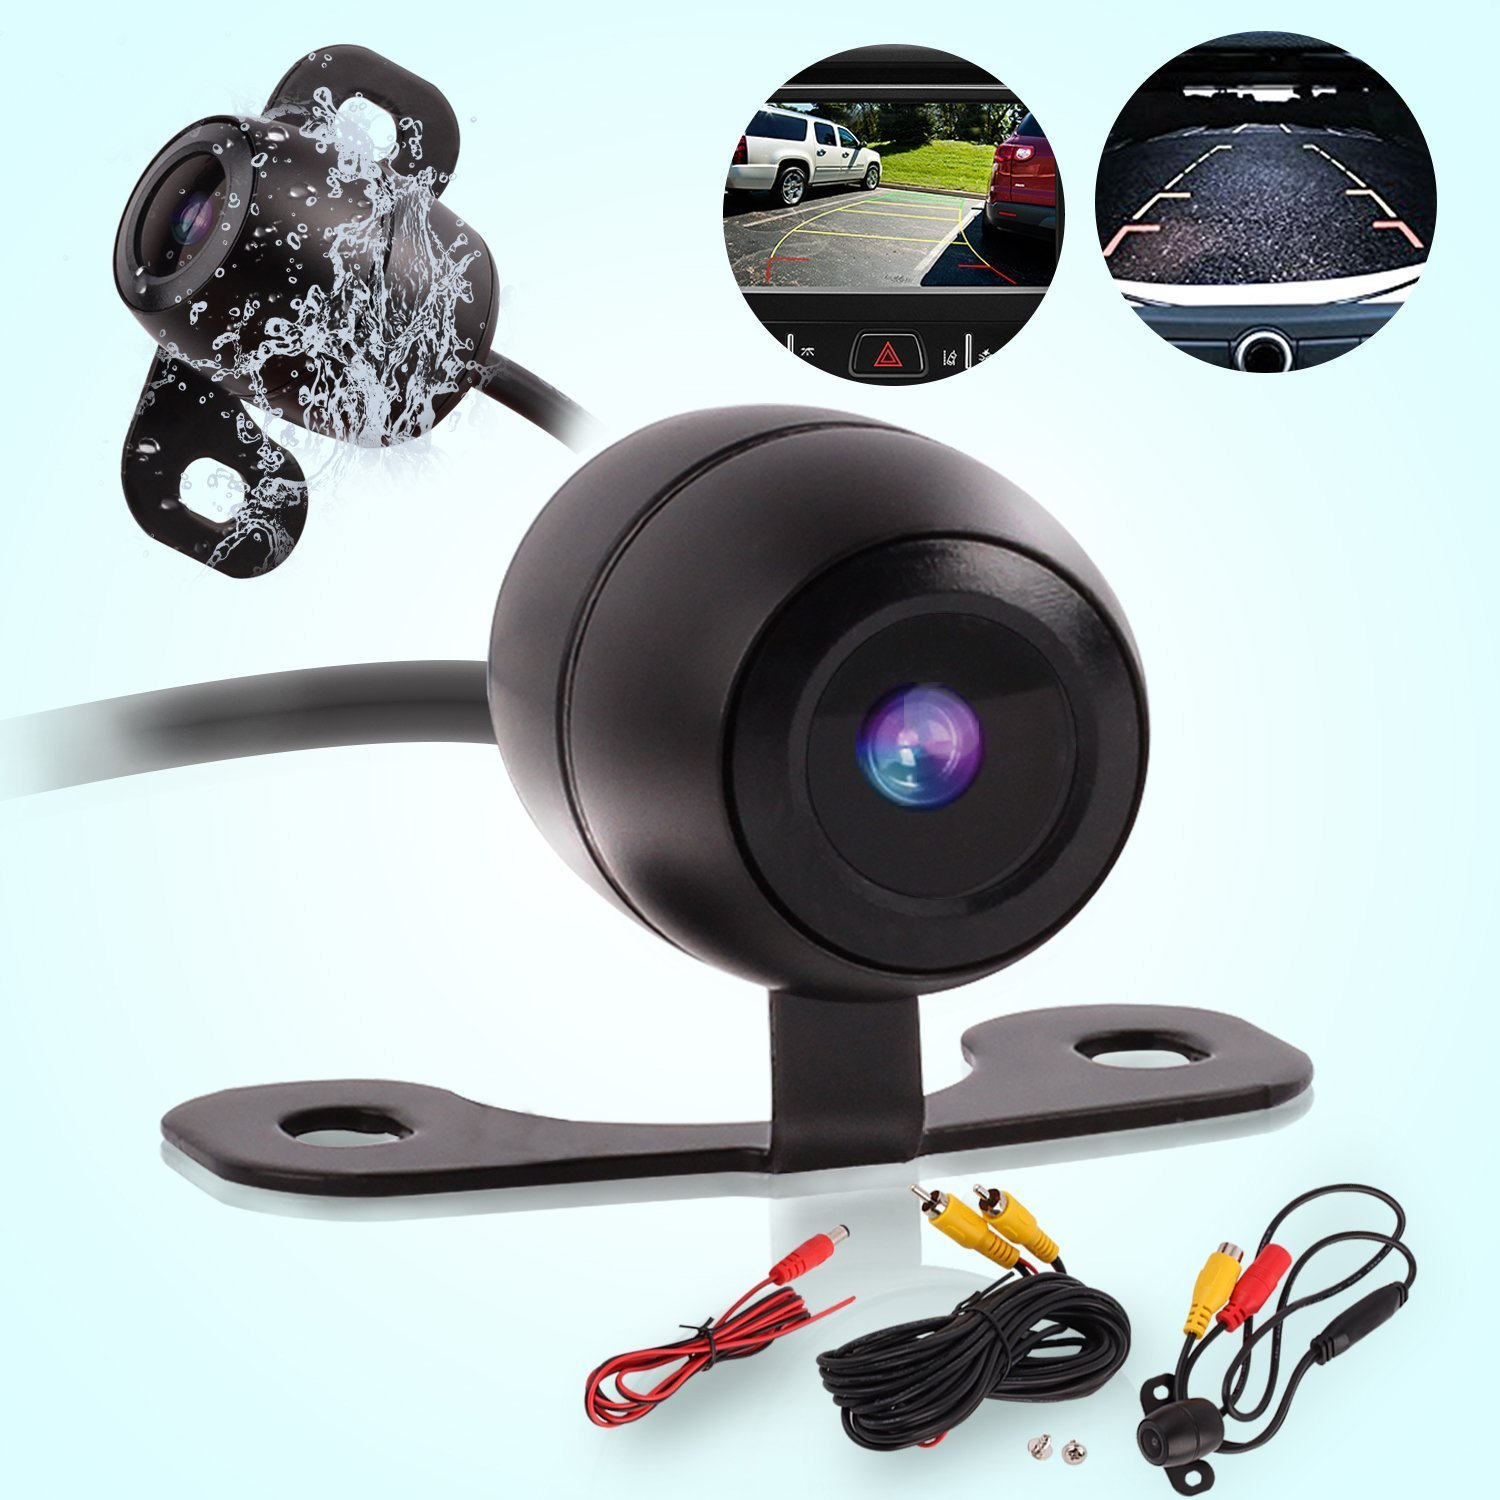 License Plate Reverse Parking Camera Universal Car Monitor Cameras High Definition IP68 Rated 170 Degree Night Vision Easy Installation with 2 Years Warranty Fanco Electronics